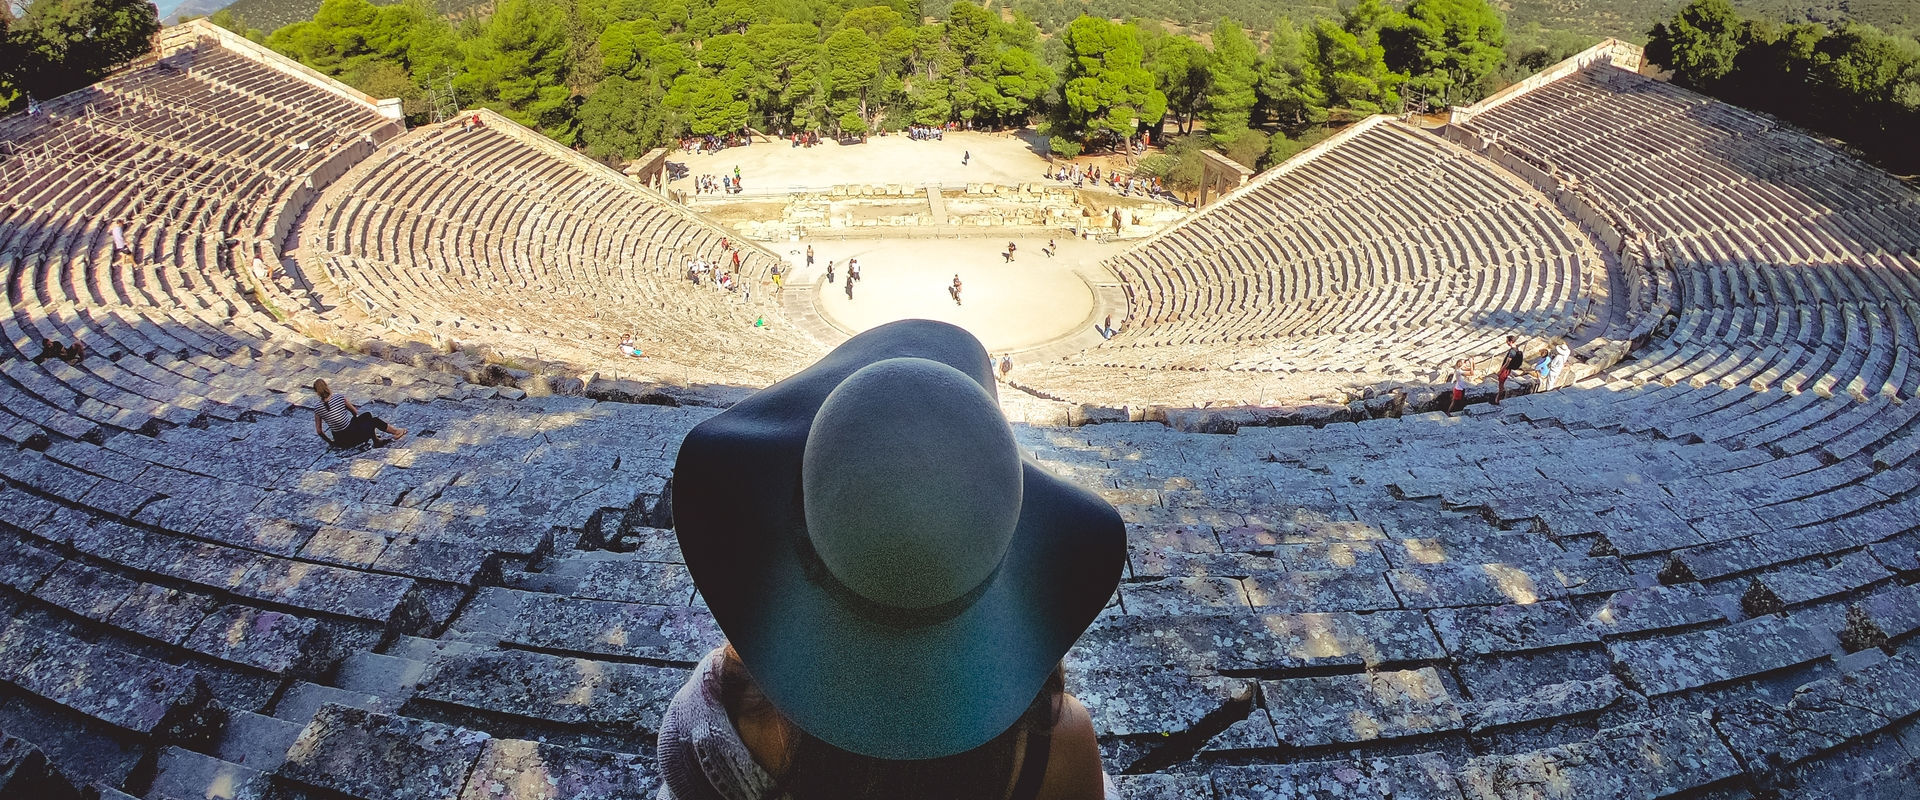 Overlooking from the top of Ancient theater of Epidaurus